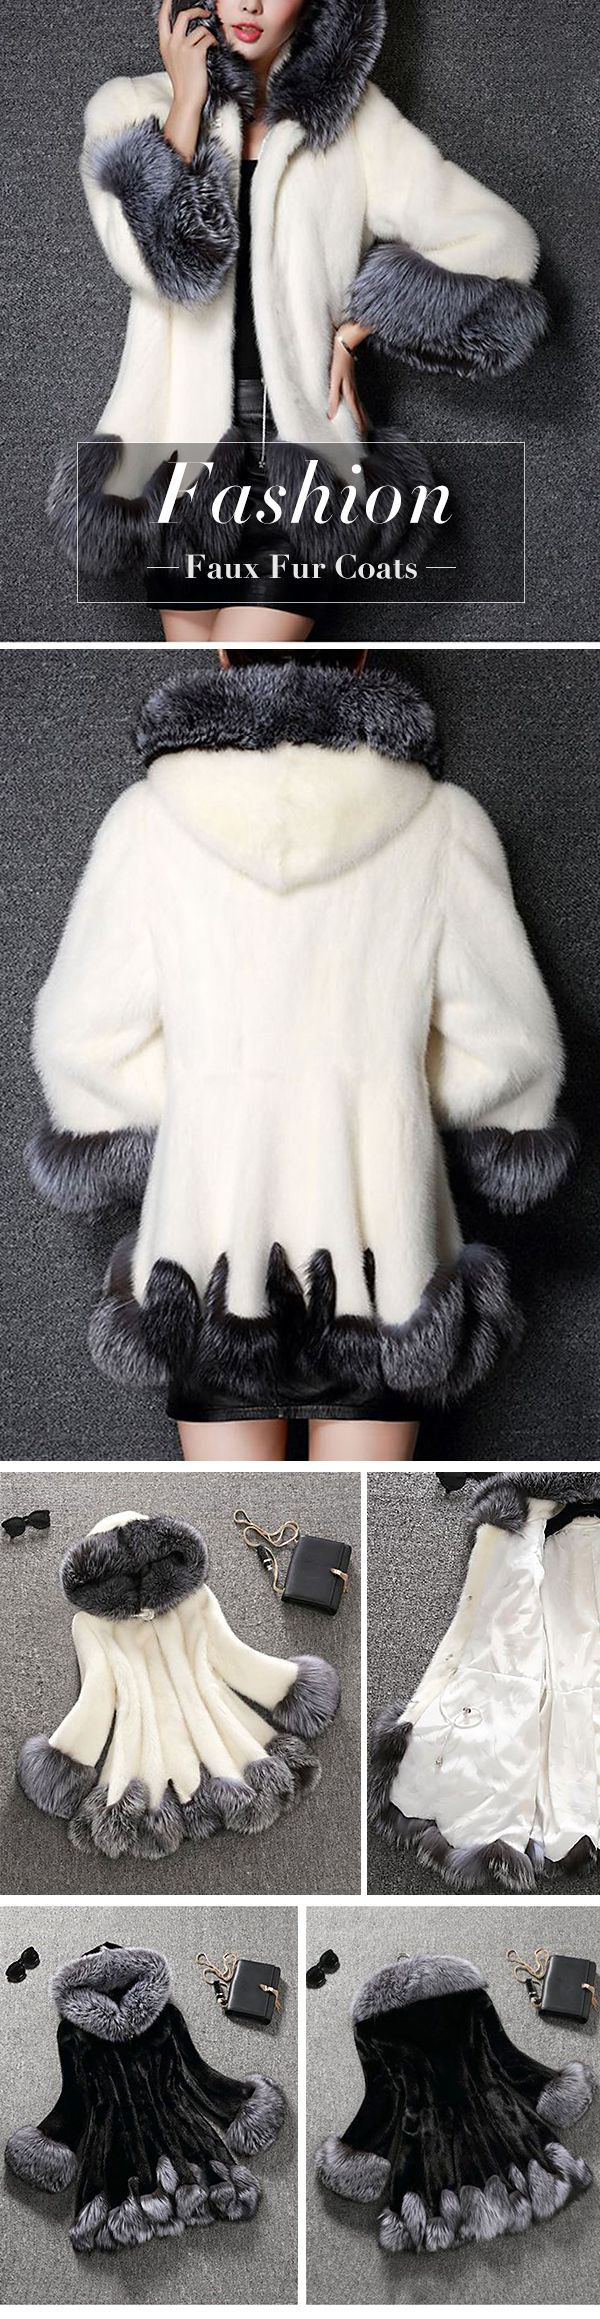 Fashion Hooded Faux Fur Coats For Women #fashion #style #winter #coat